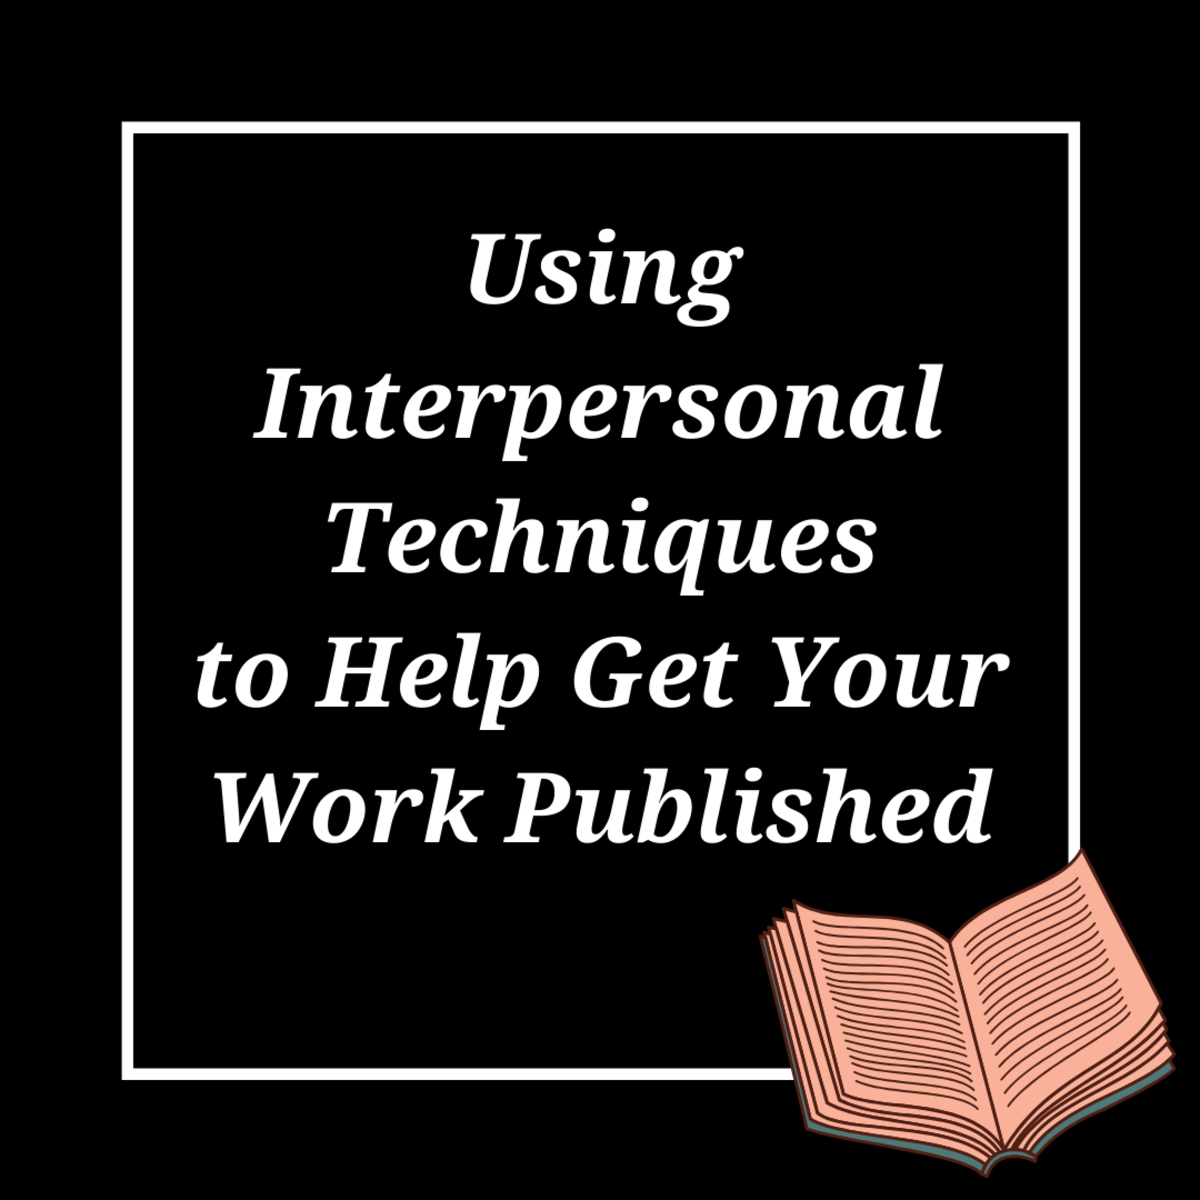 Get some advice on improving your chances of getting published by employing interpersonal techniques.